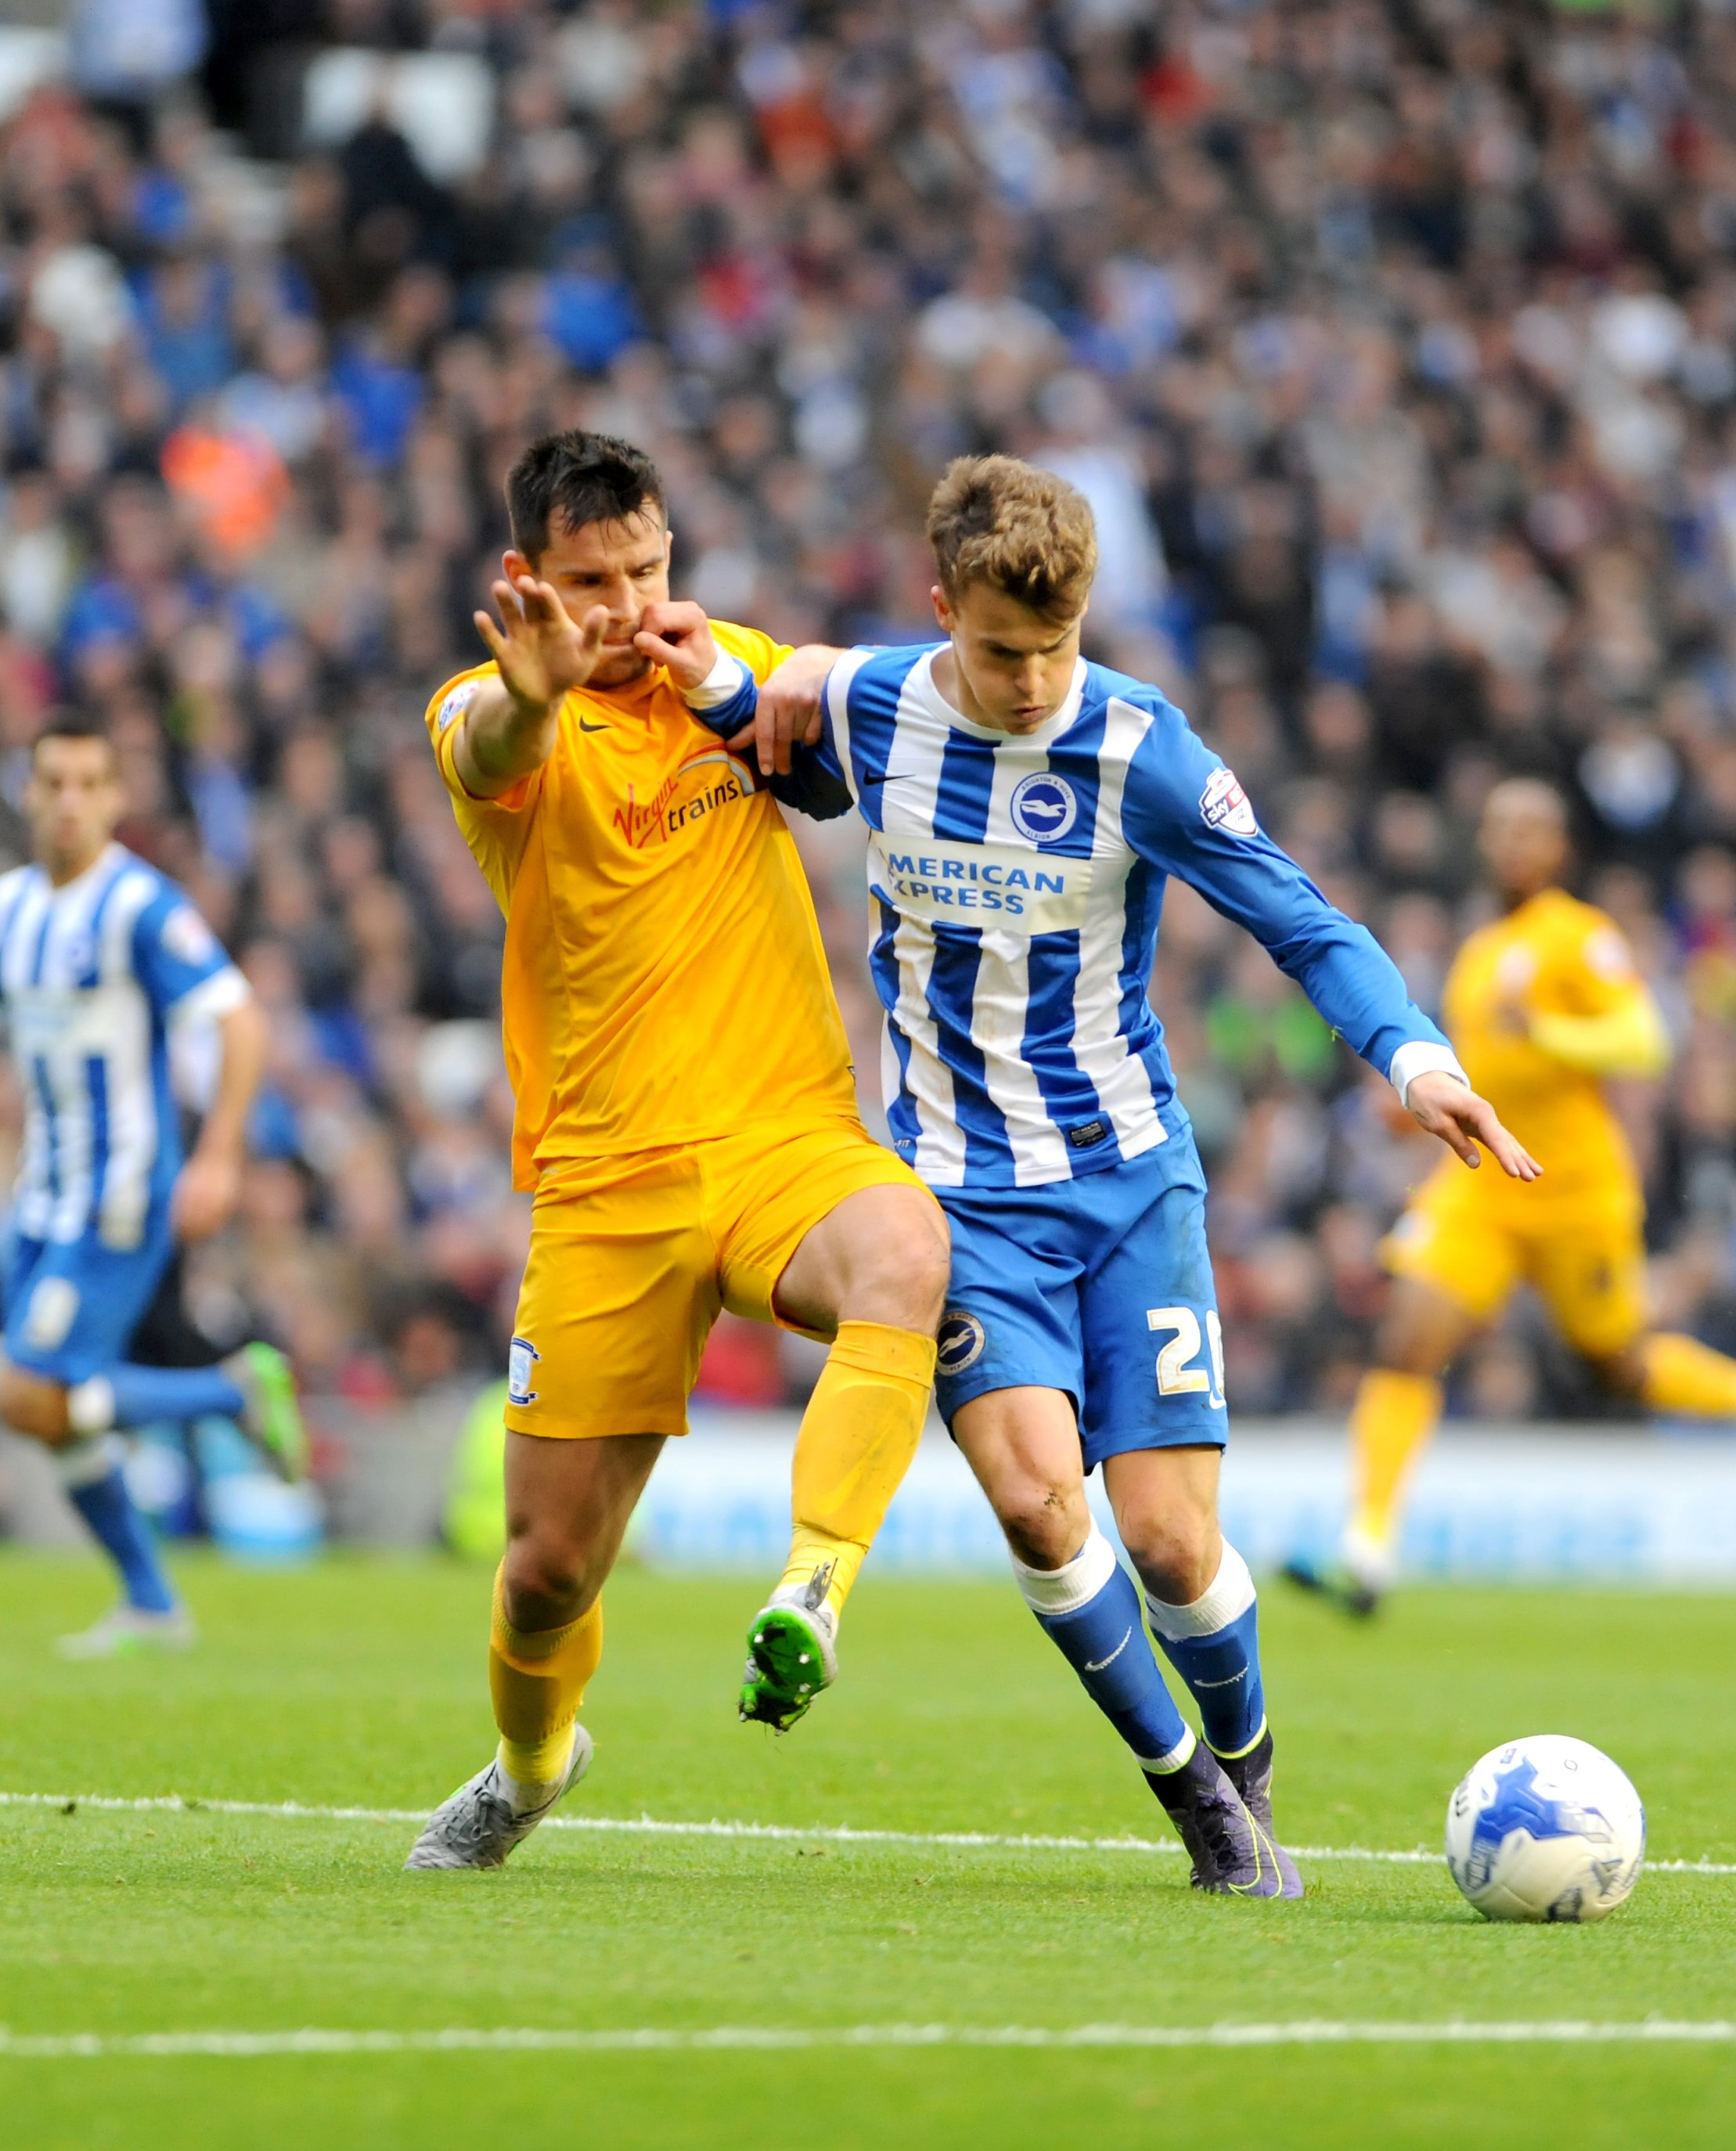 Solly March played another half as he makes his return to fitness